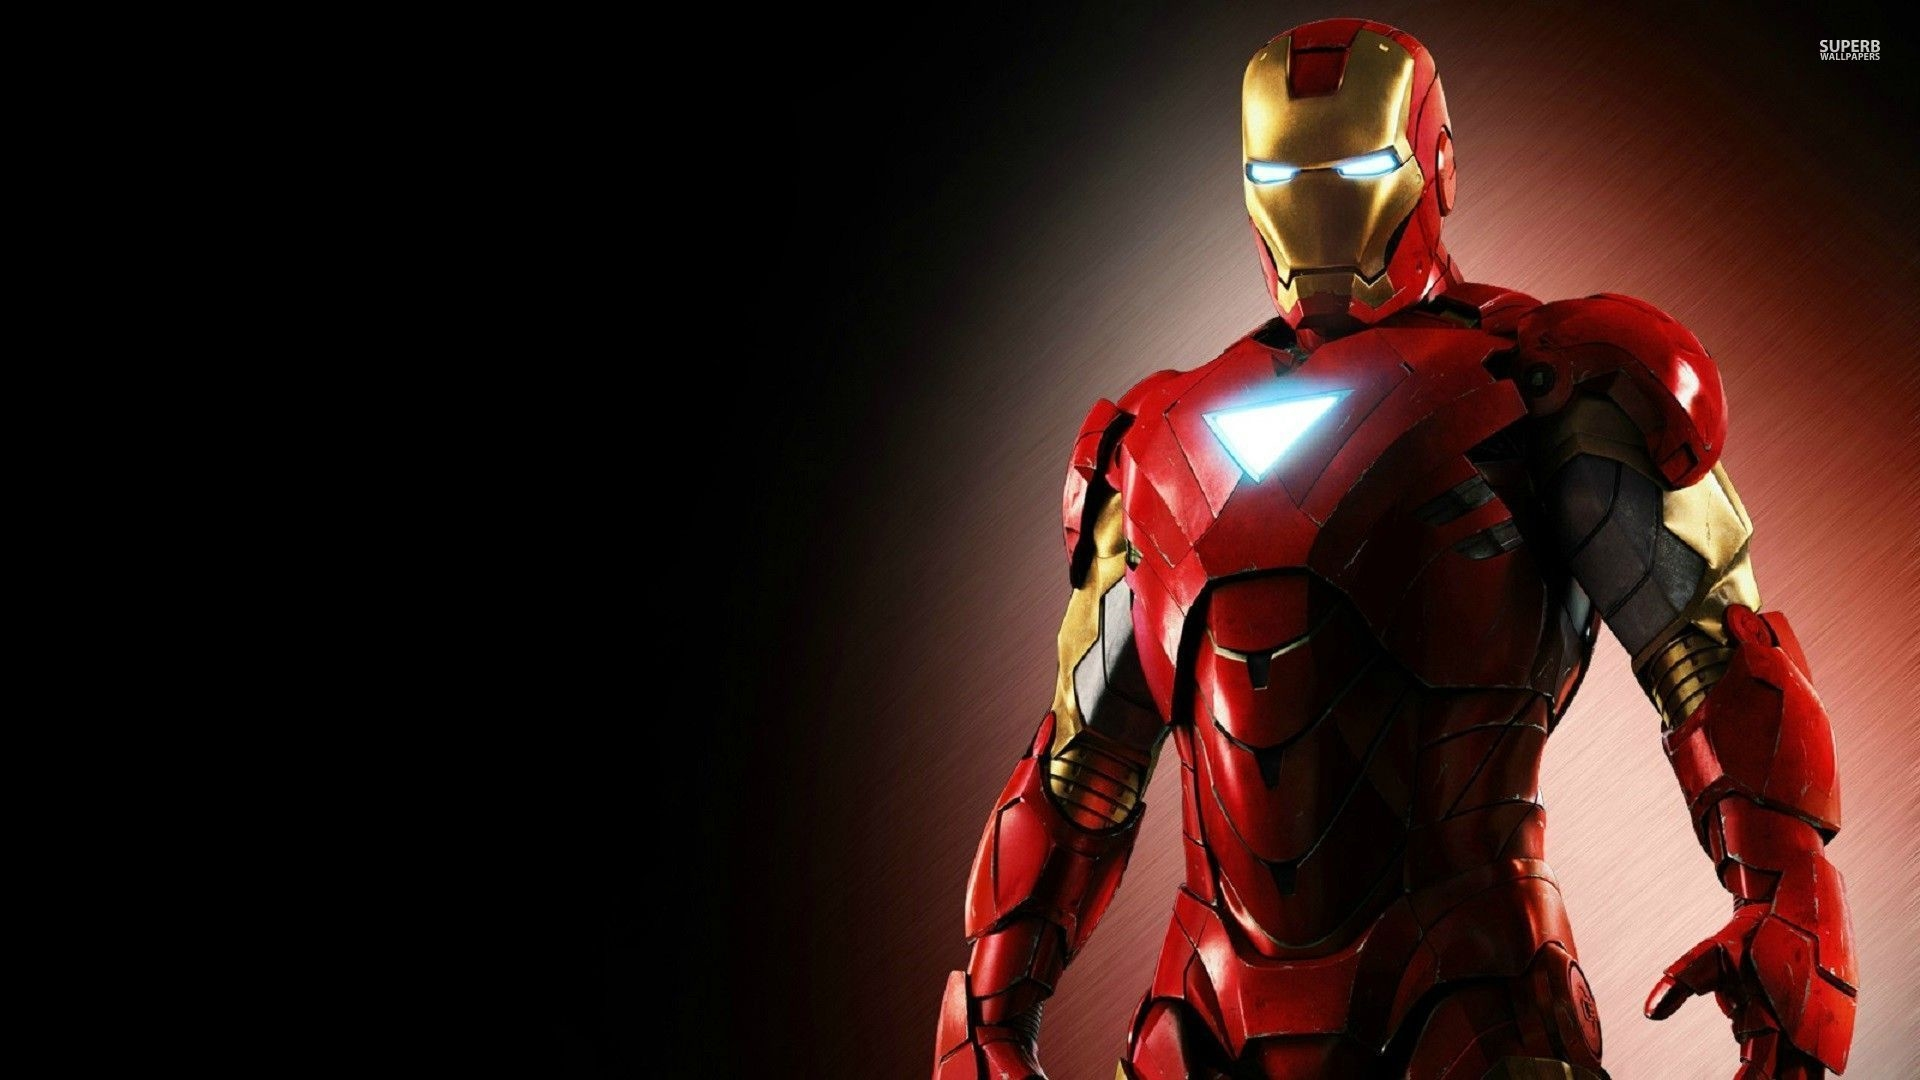 Iron Man HD Wallpapers  Images  HD Images p 1920x1080